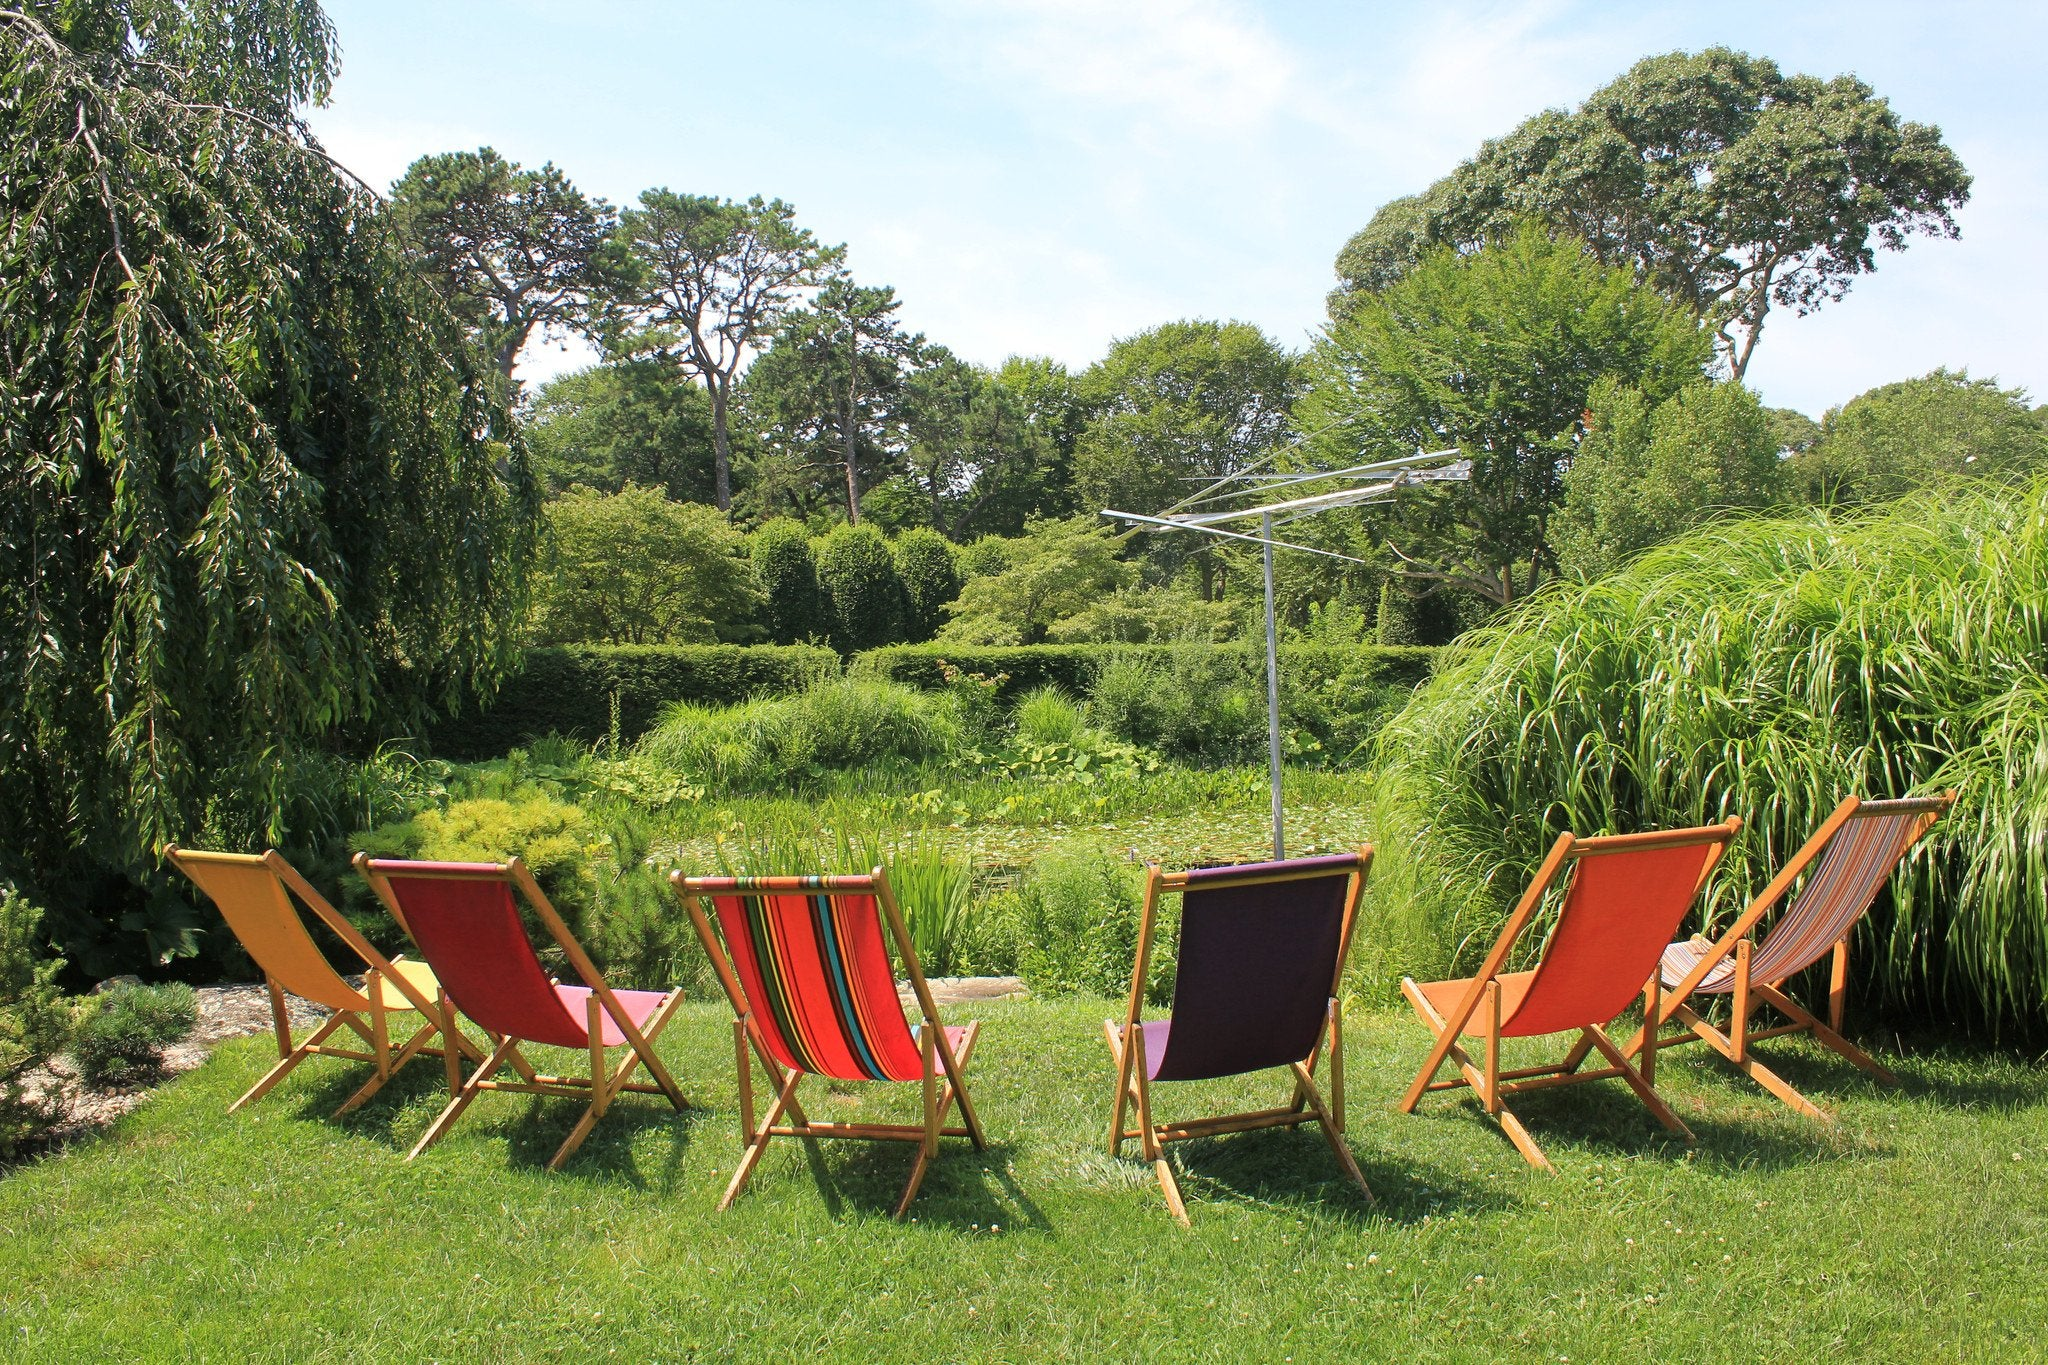 Sunbrella Chairs:  The Stalwarts of LongHouse Reserve